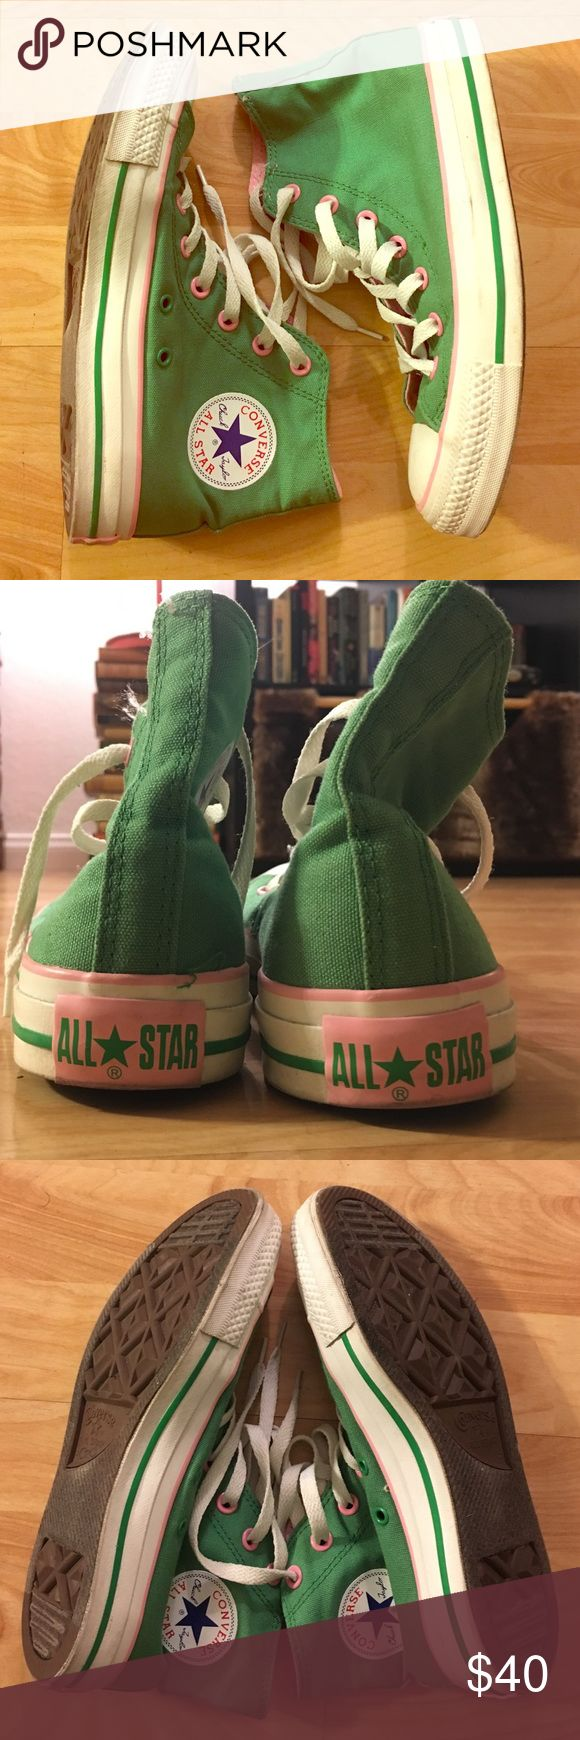 Green & Pink high top Converse Chuck Taylor's These green and pink high top converse sneakers are CUTE AS ANYTHING! Green throughout the body, with pink piping, grommets, and lining. I bought them for a special event and only wore them once! In fantastic condition and fit like a DREAM! Women's size 7, men's size 5. Great addition to any Chuck Taylor addicts collection! Reasonable offers considered! Converse Shoes Sneakers